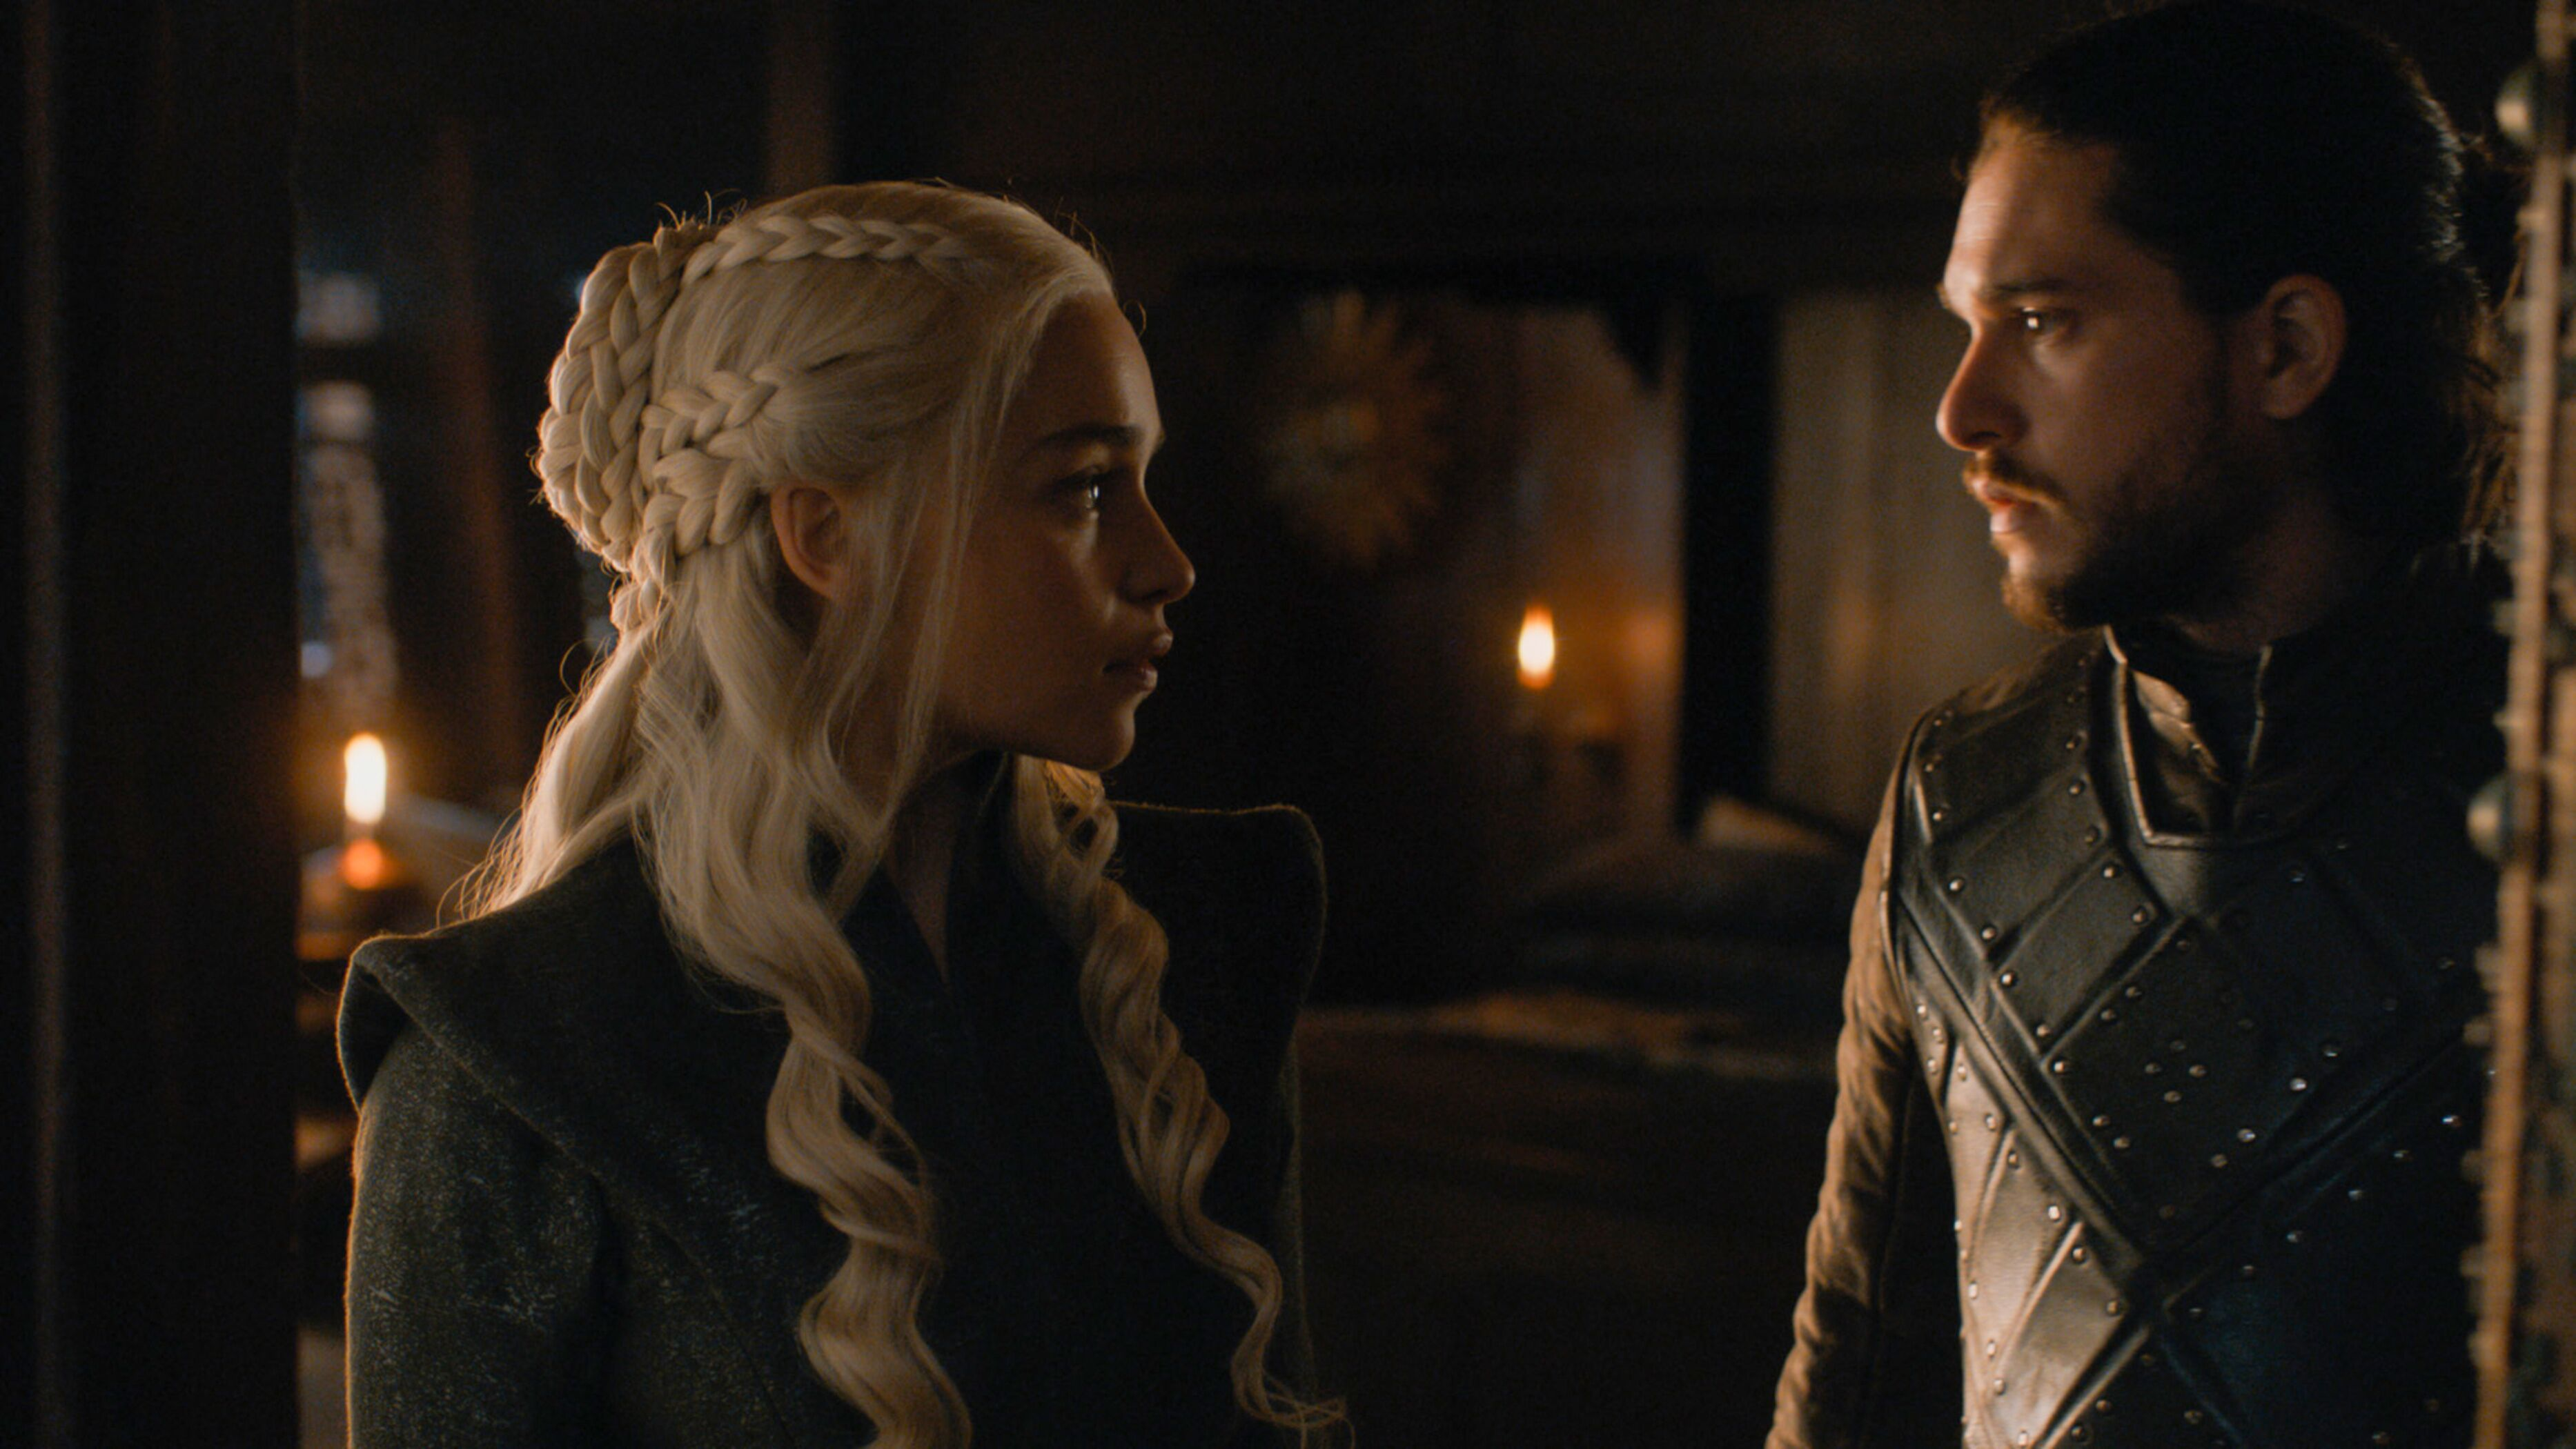 game of thrones season 7 makes year-end best-of lists